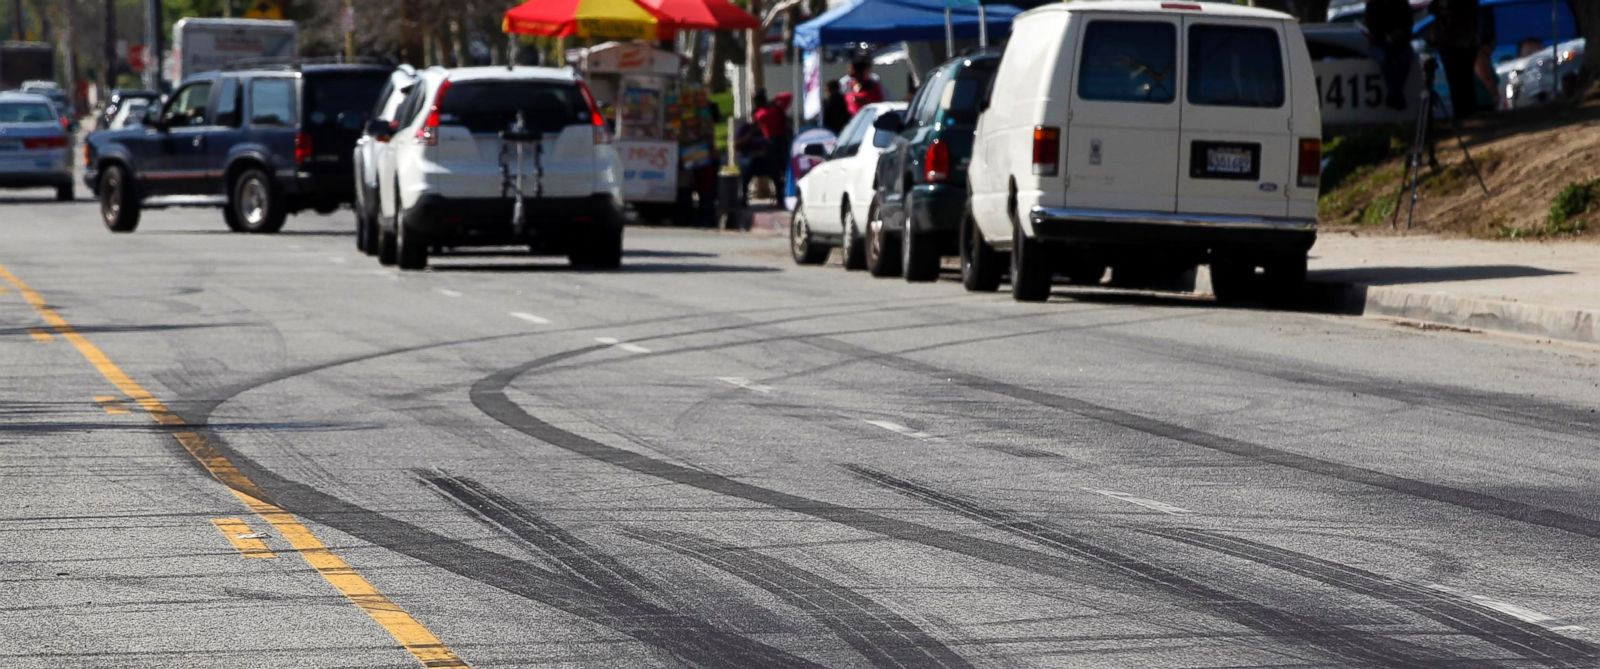 PHOTO: Car skid marks are visible along a street in the Chatsworth section of Los Angeles, Thursday, Feb. 26, 2015.